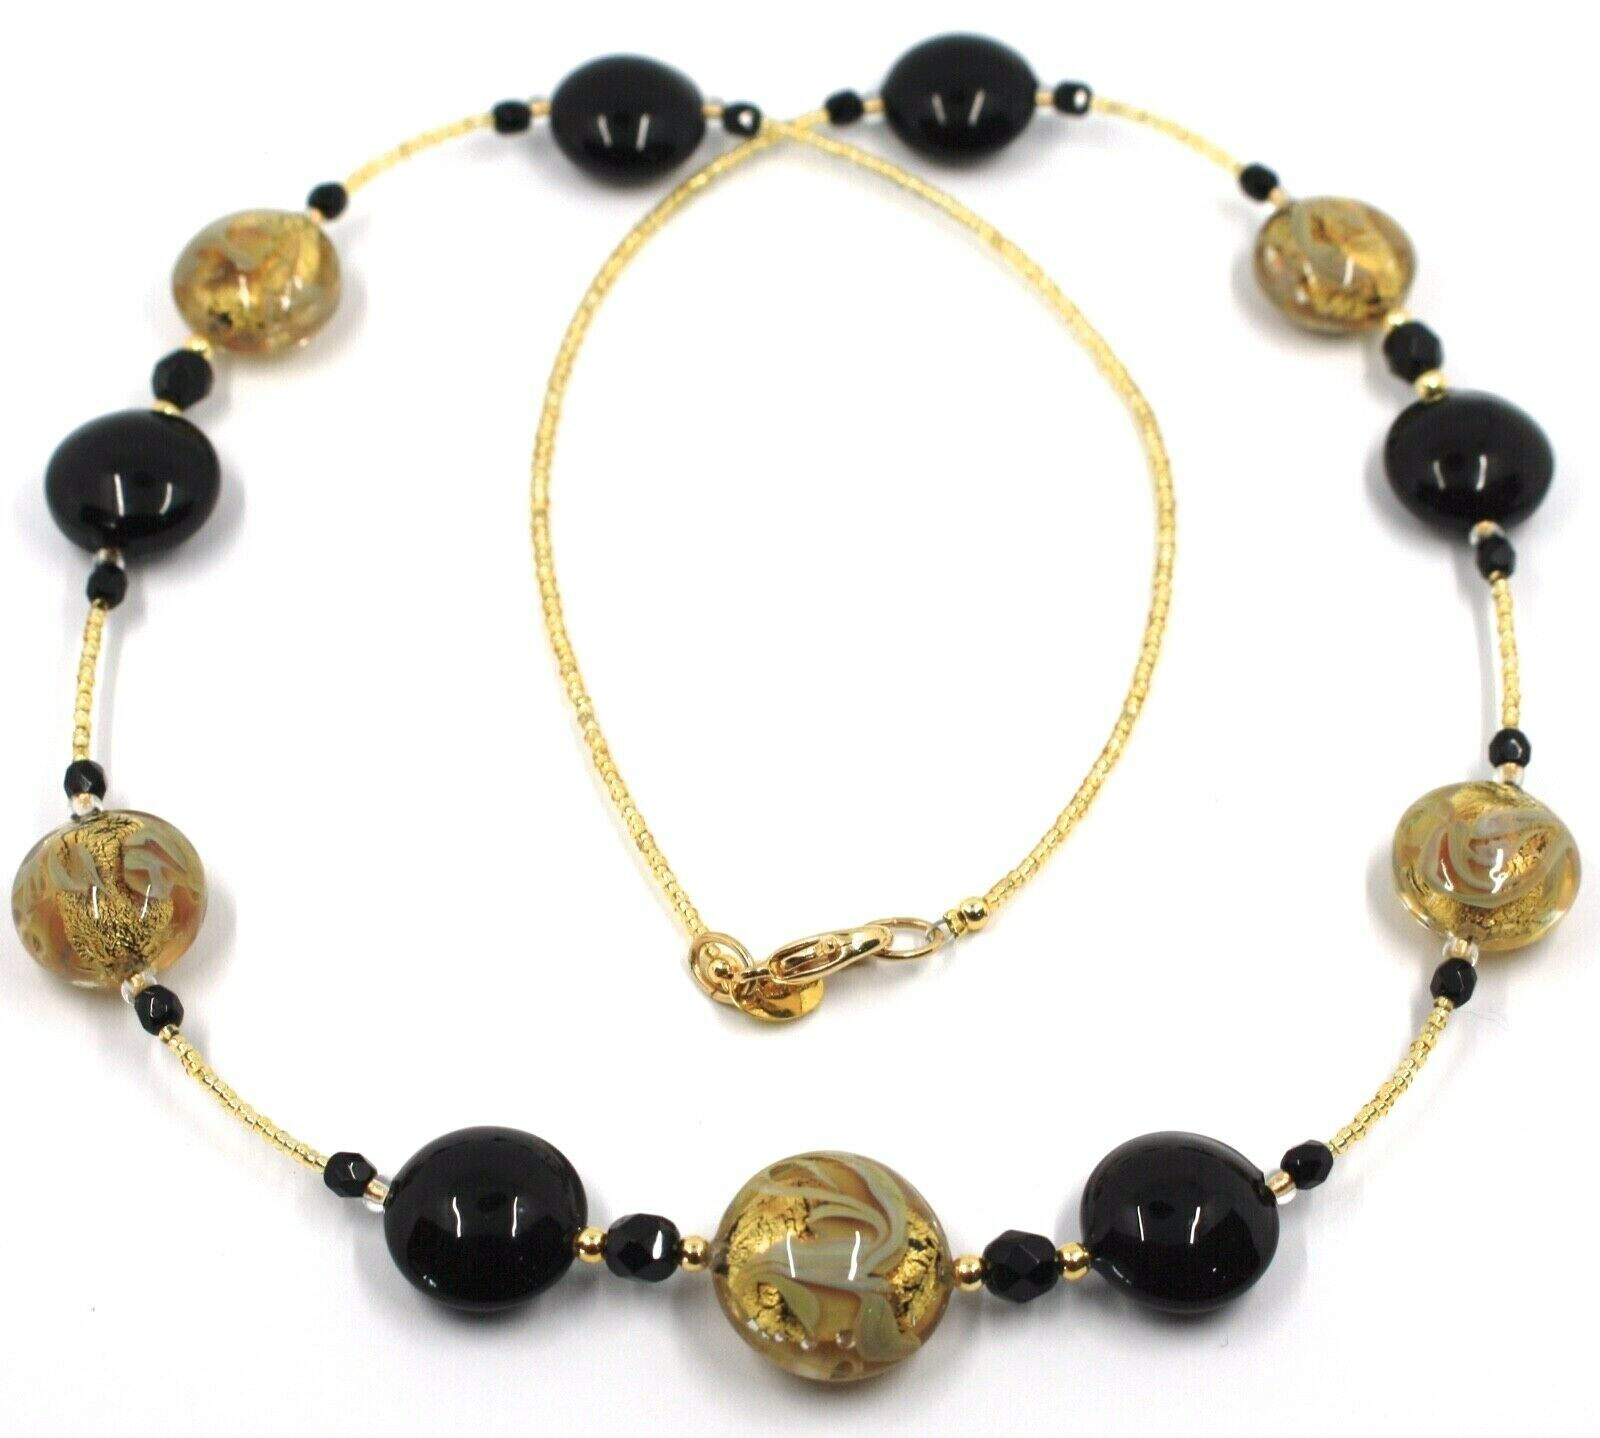 """LONG NECKLACE BLACK YELLOW MURANO GLASS DISC GOLD LEAF, 70cm, 27.5"""" ITALY MADE"""